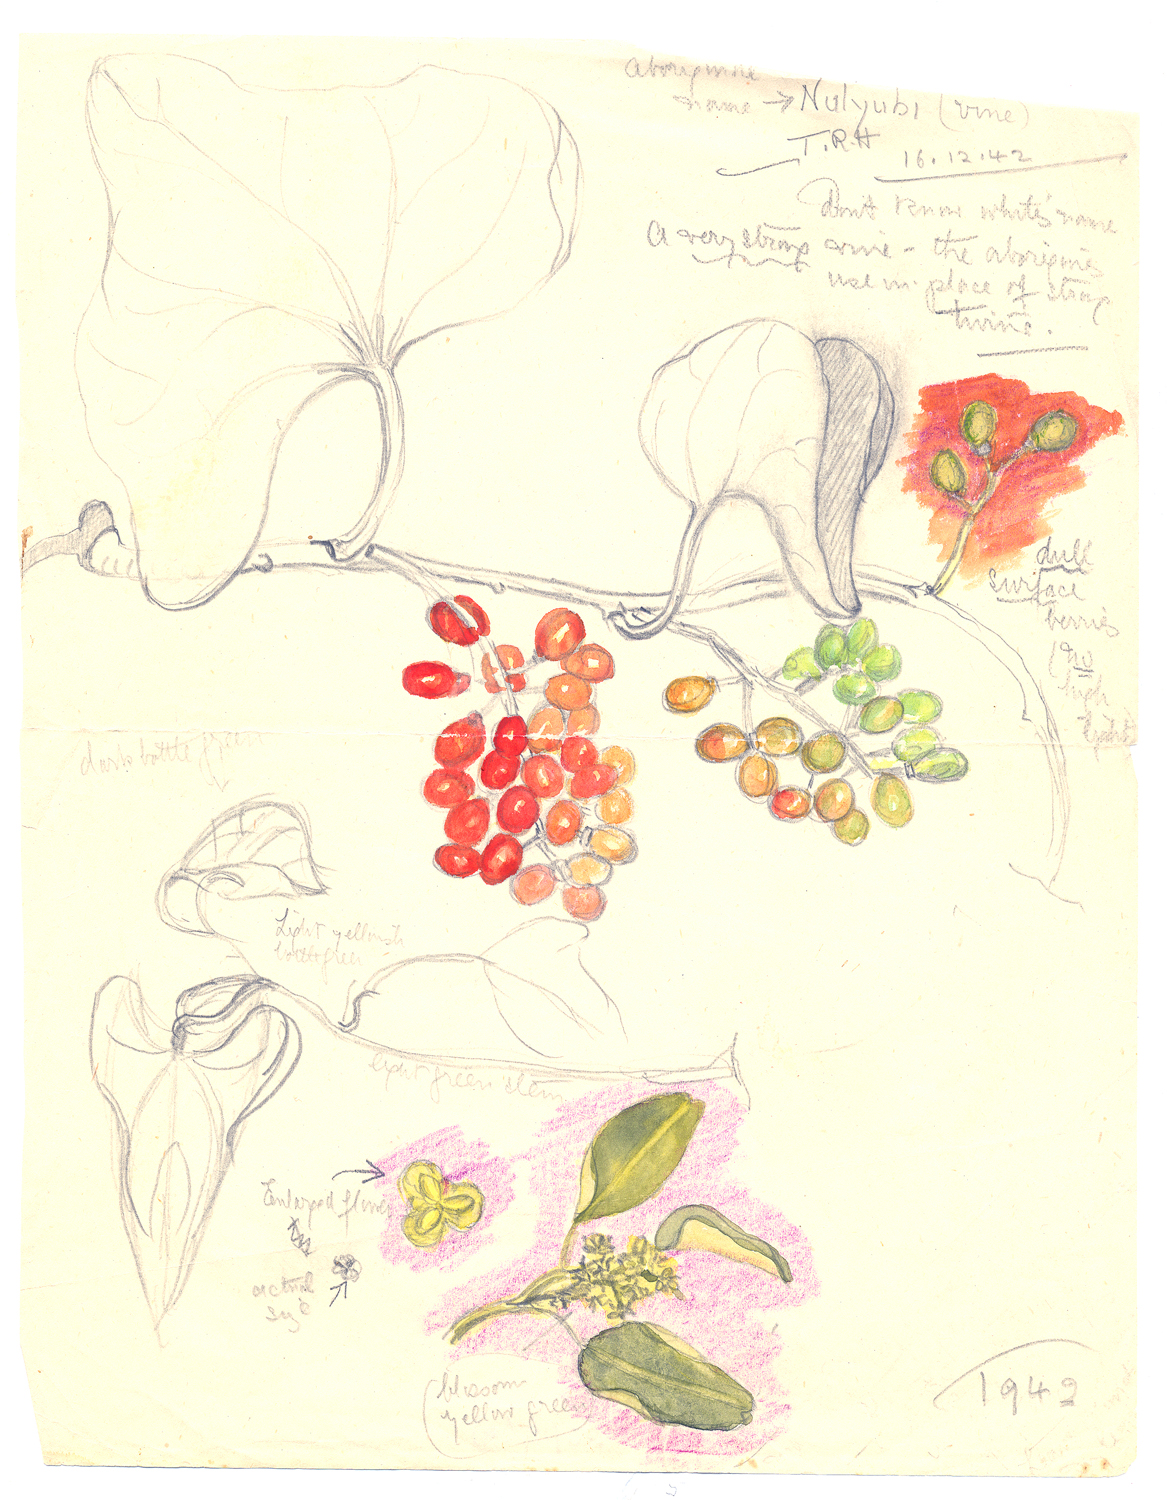 Olive Pink,  Thompsons Rock Hole , watercolour and pencil on paper, 1942, Olive Pink Collection, University of Tasmania